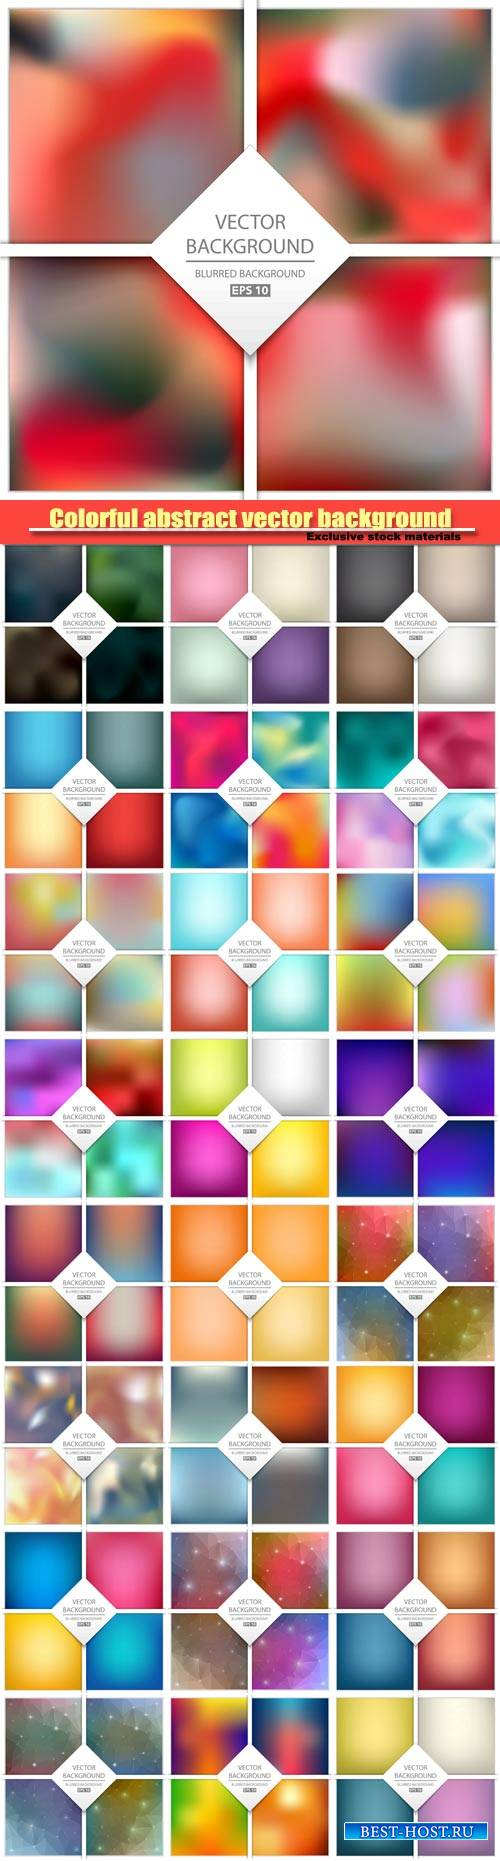 Multicolored abstract vector background, art illustration template design